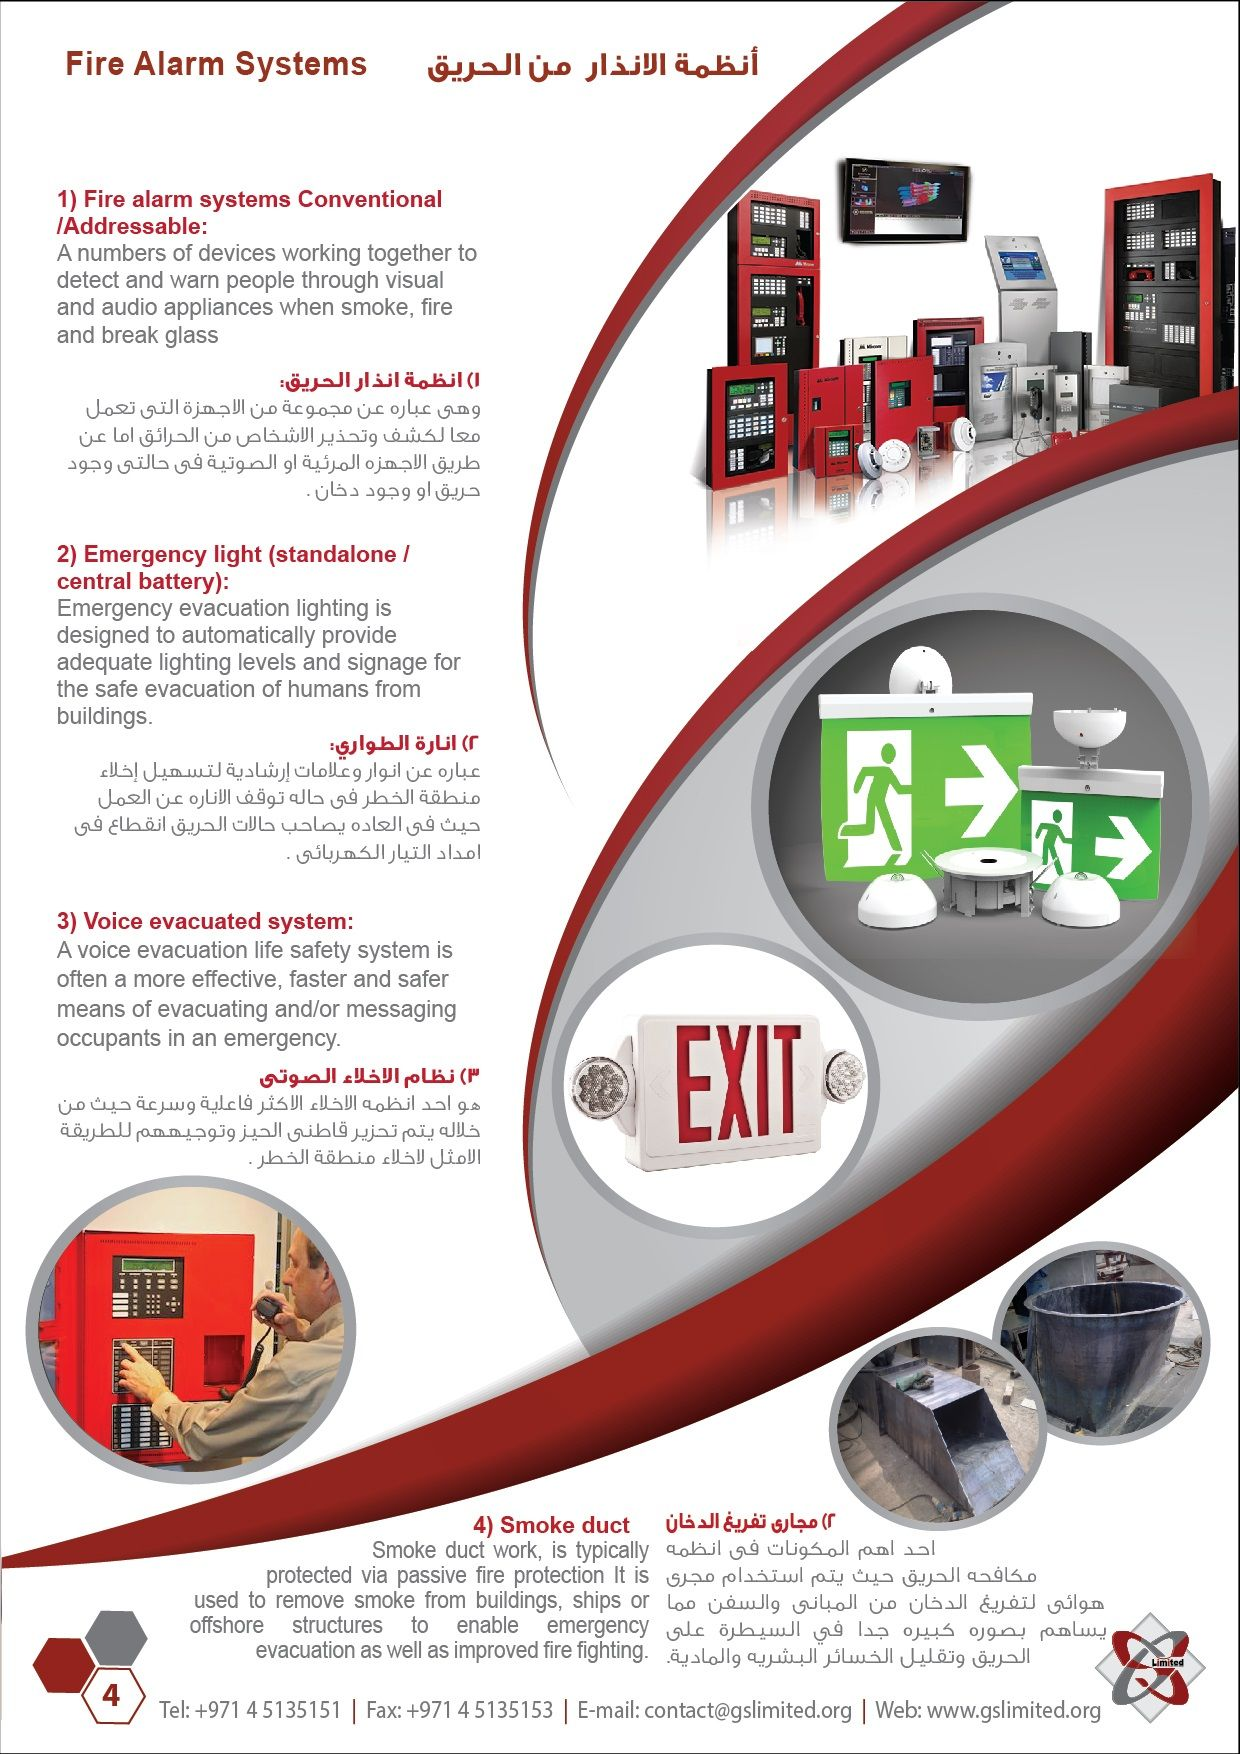 medium resolution of fire alarm systems golden shield company provides full solution in fire detection and firefighting including system